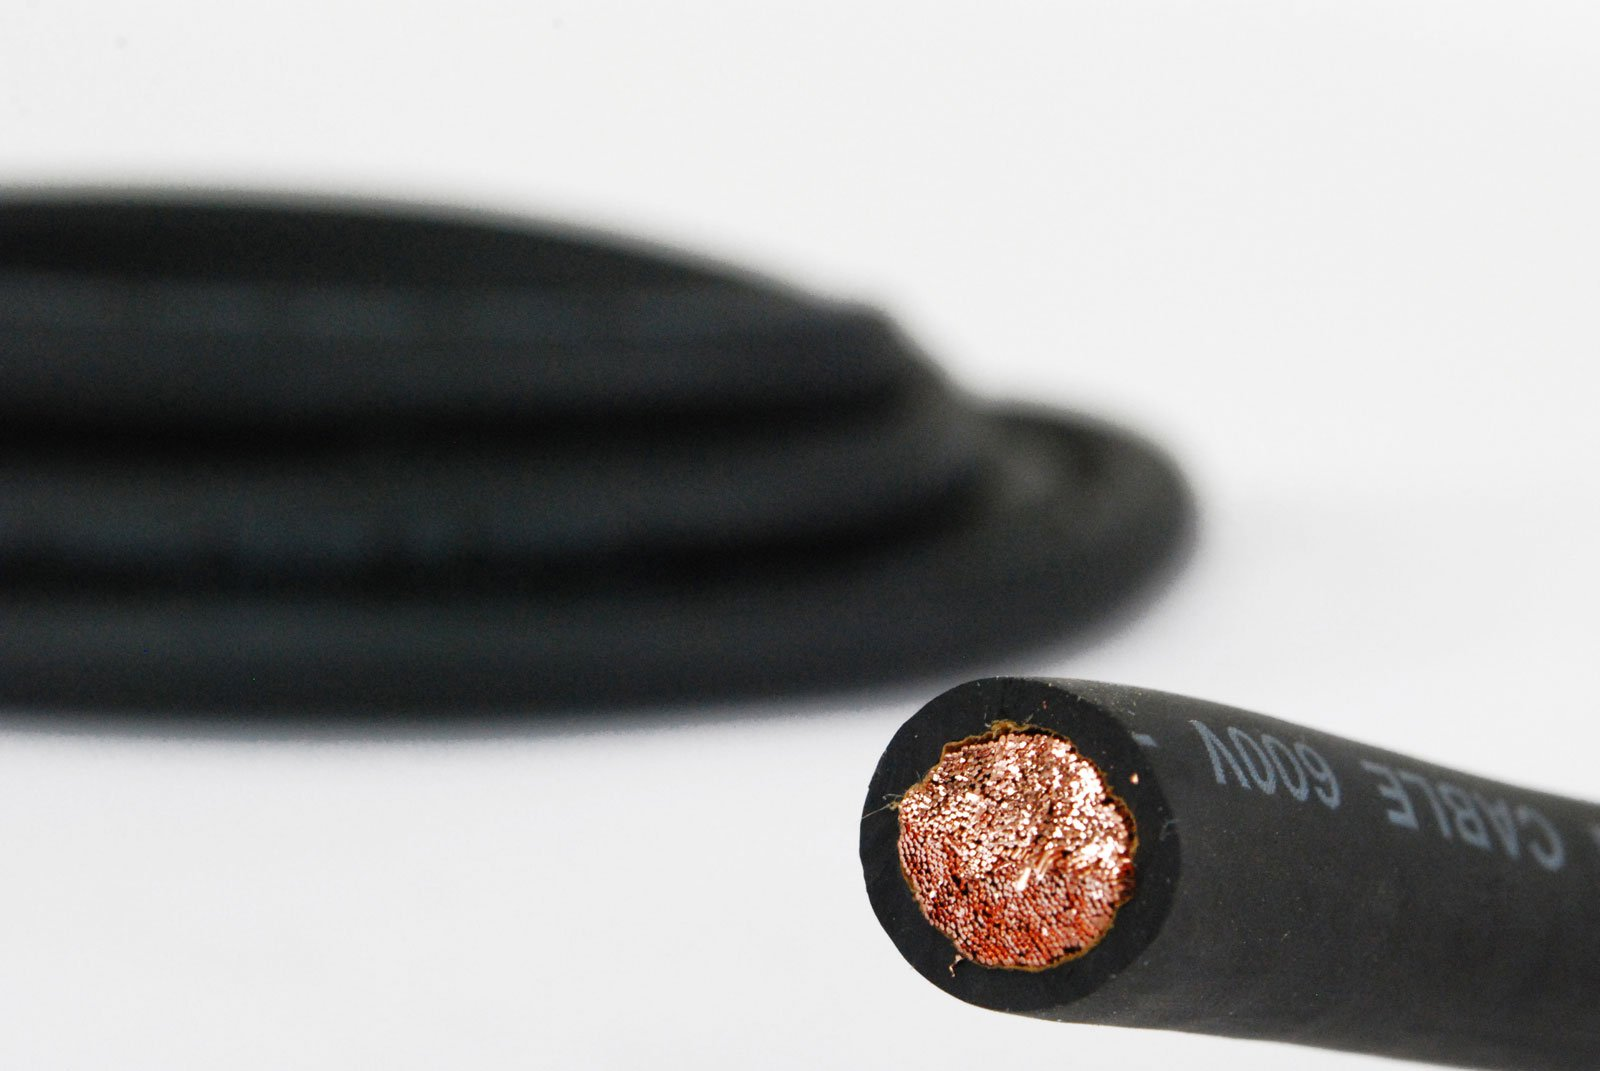 RED MADE IN USA 5 Blk, 5 Red 4 Gauge AWG Welding Lead /& Car Battery Cable Copper Wire BLACK TEMCo WC0188-10